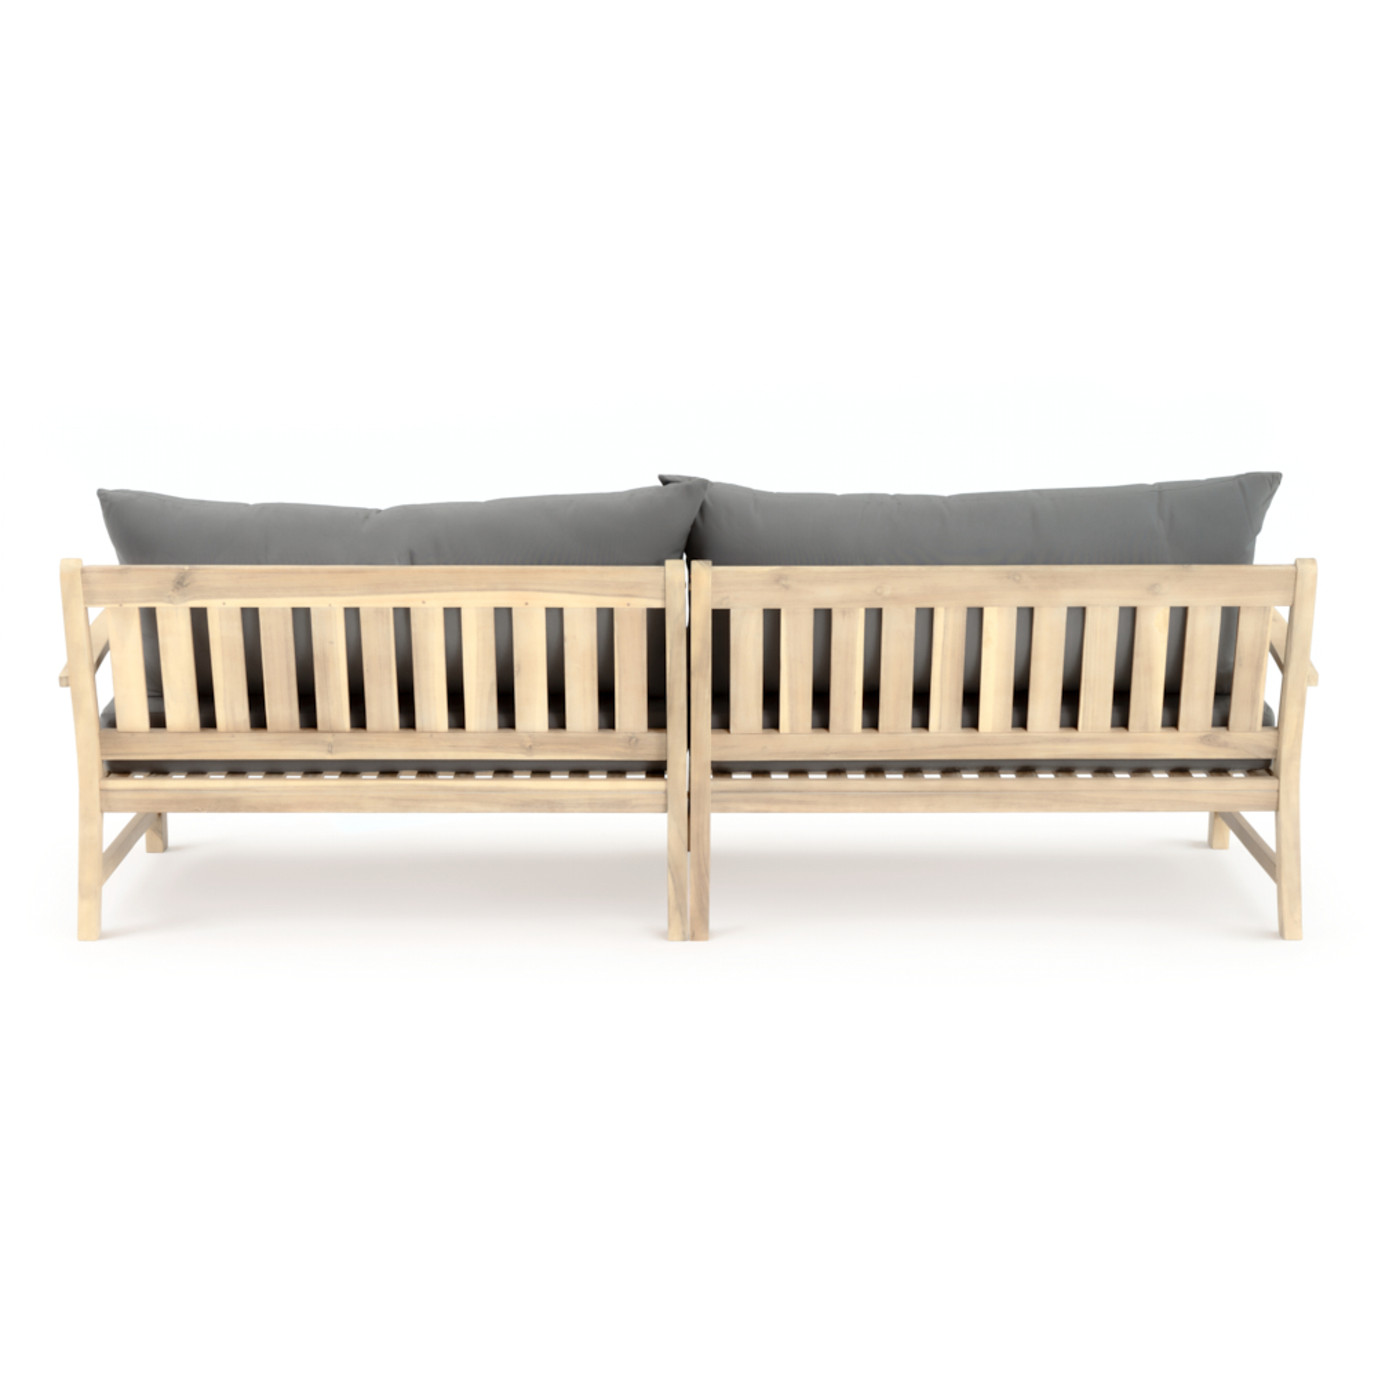 Kooper 96in Sofa - Charcoal Gray